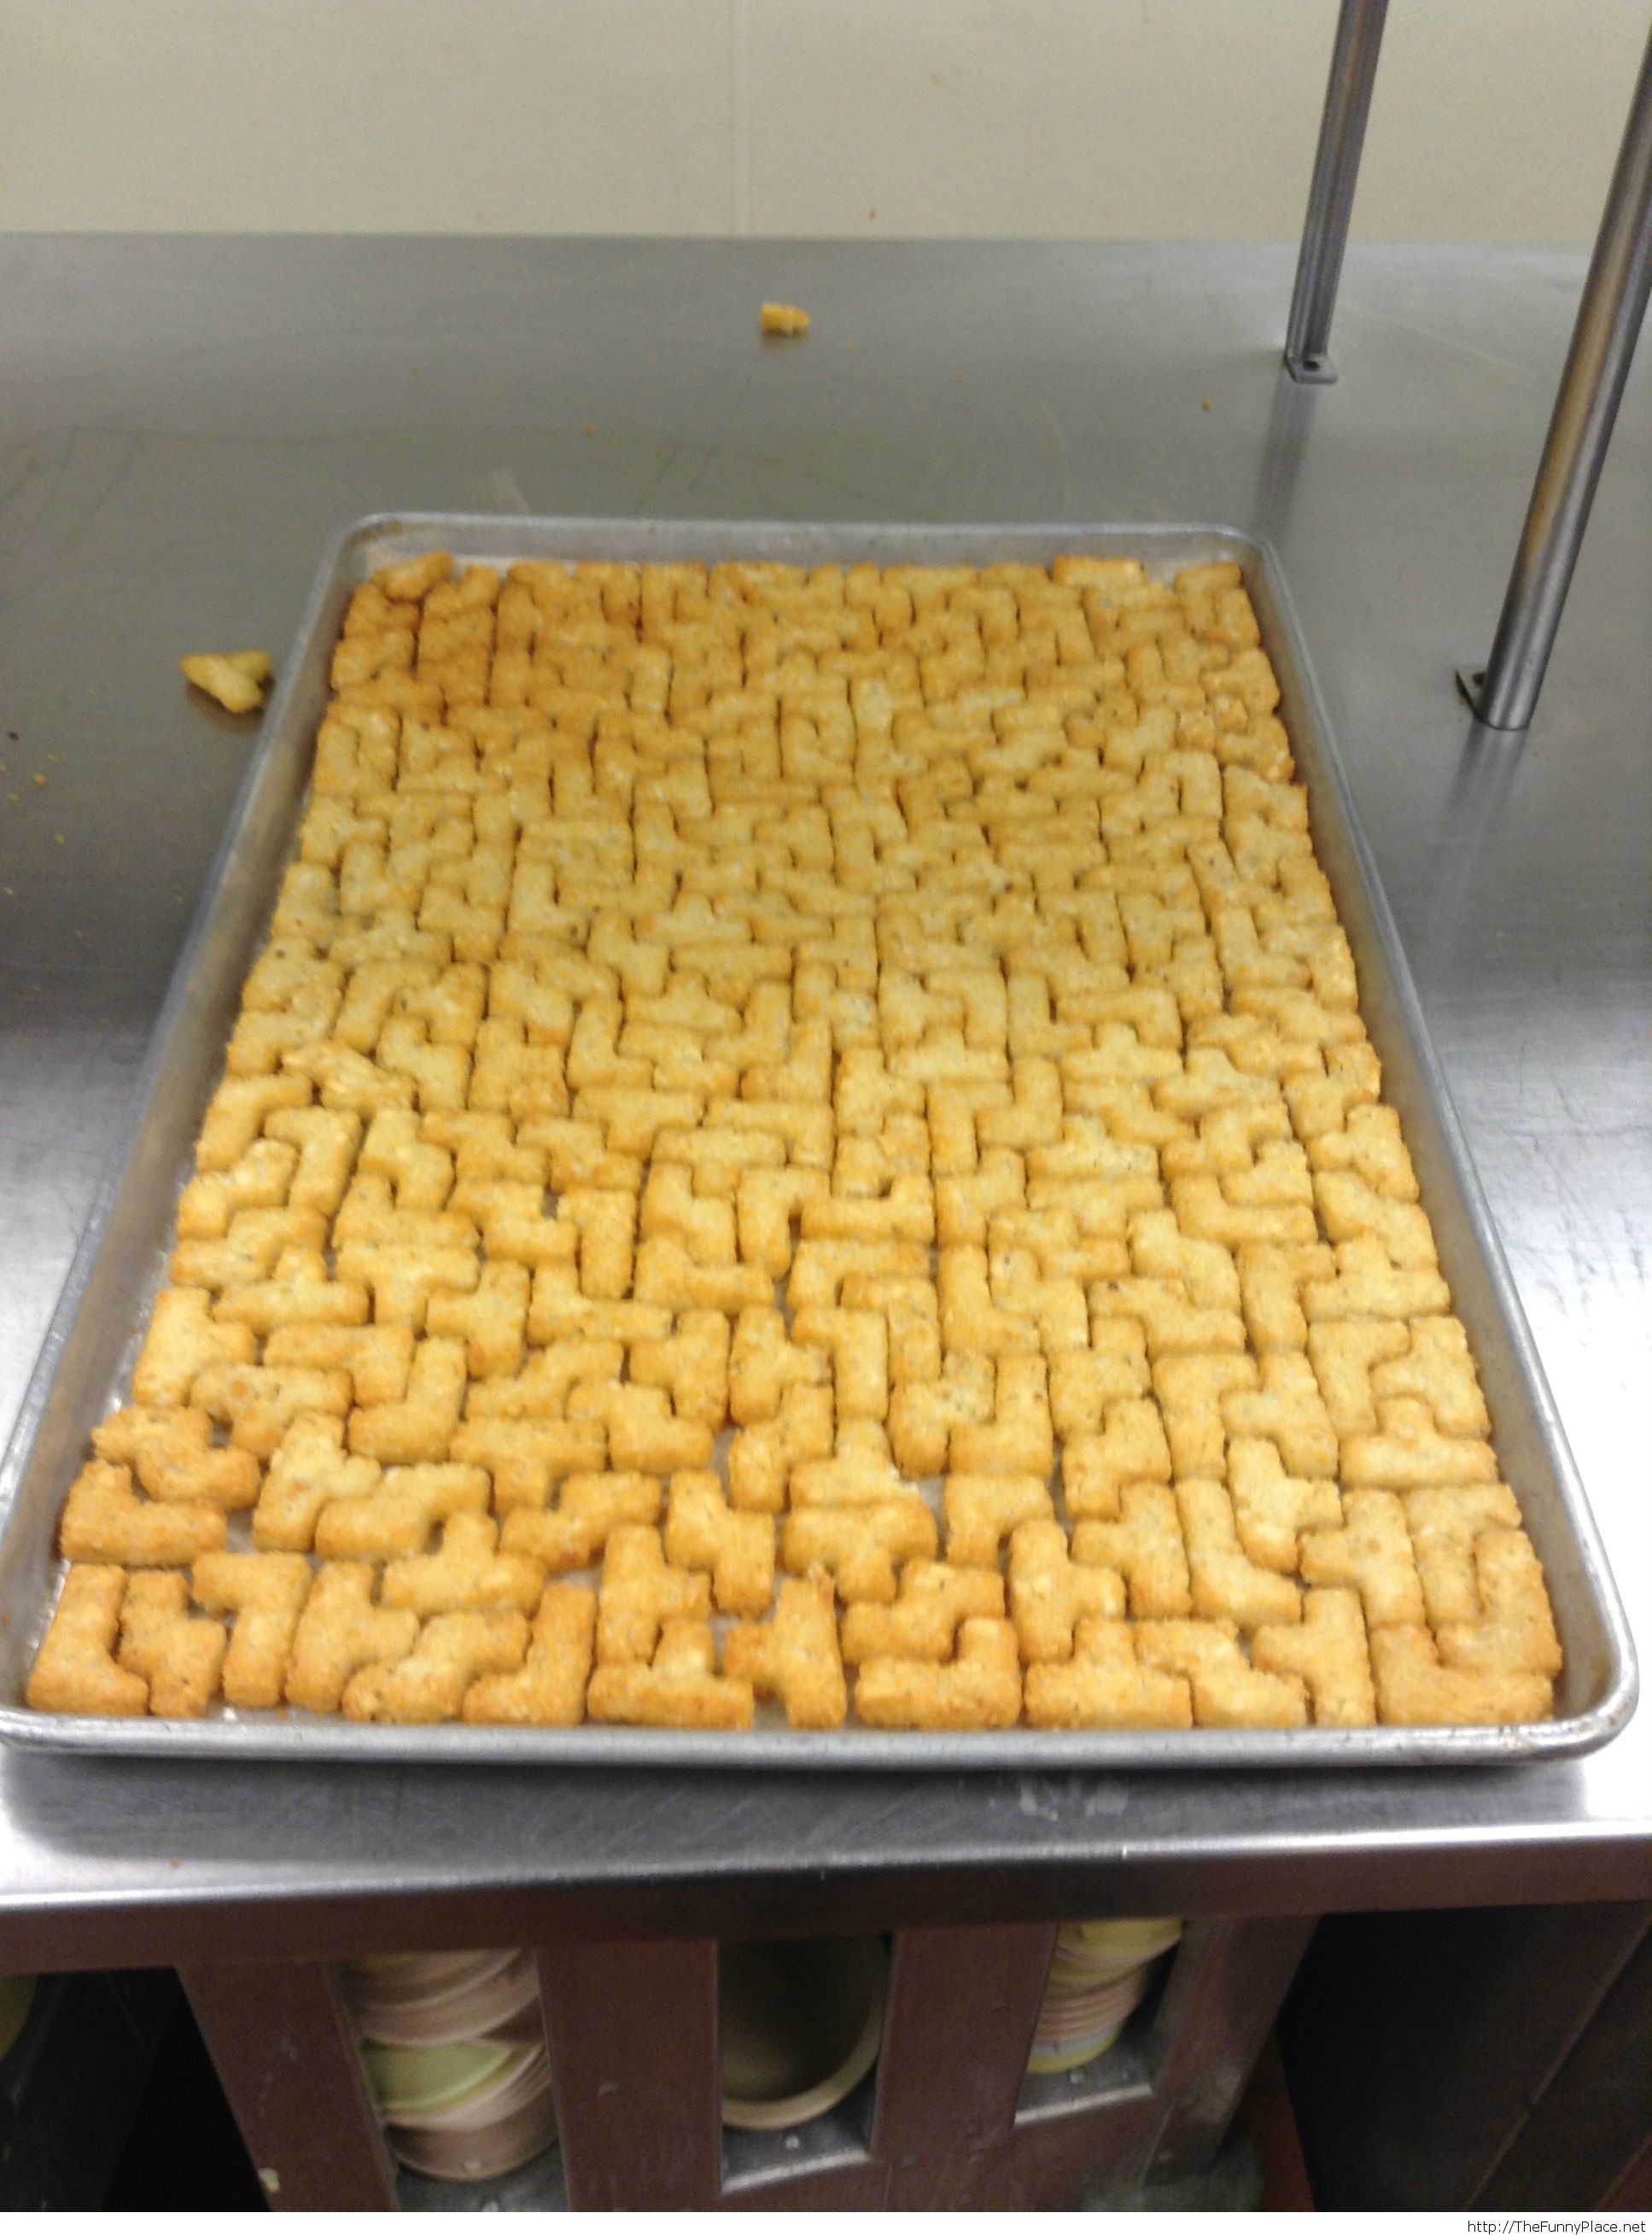 Tater tots puzzle